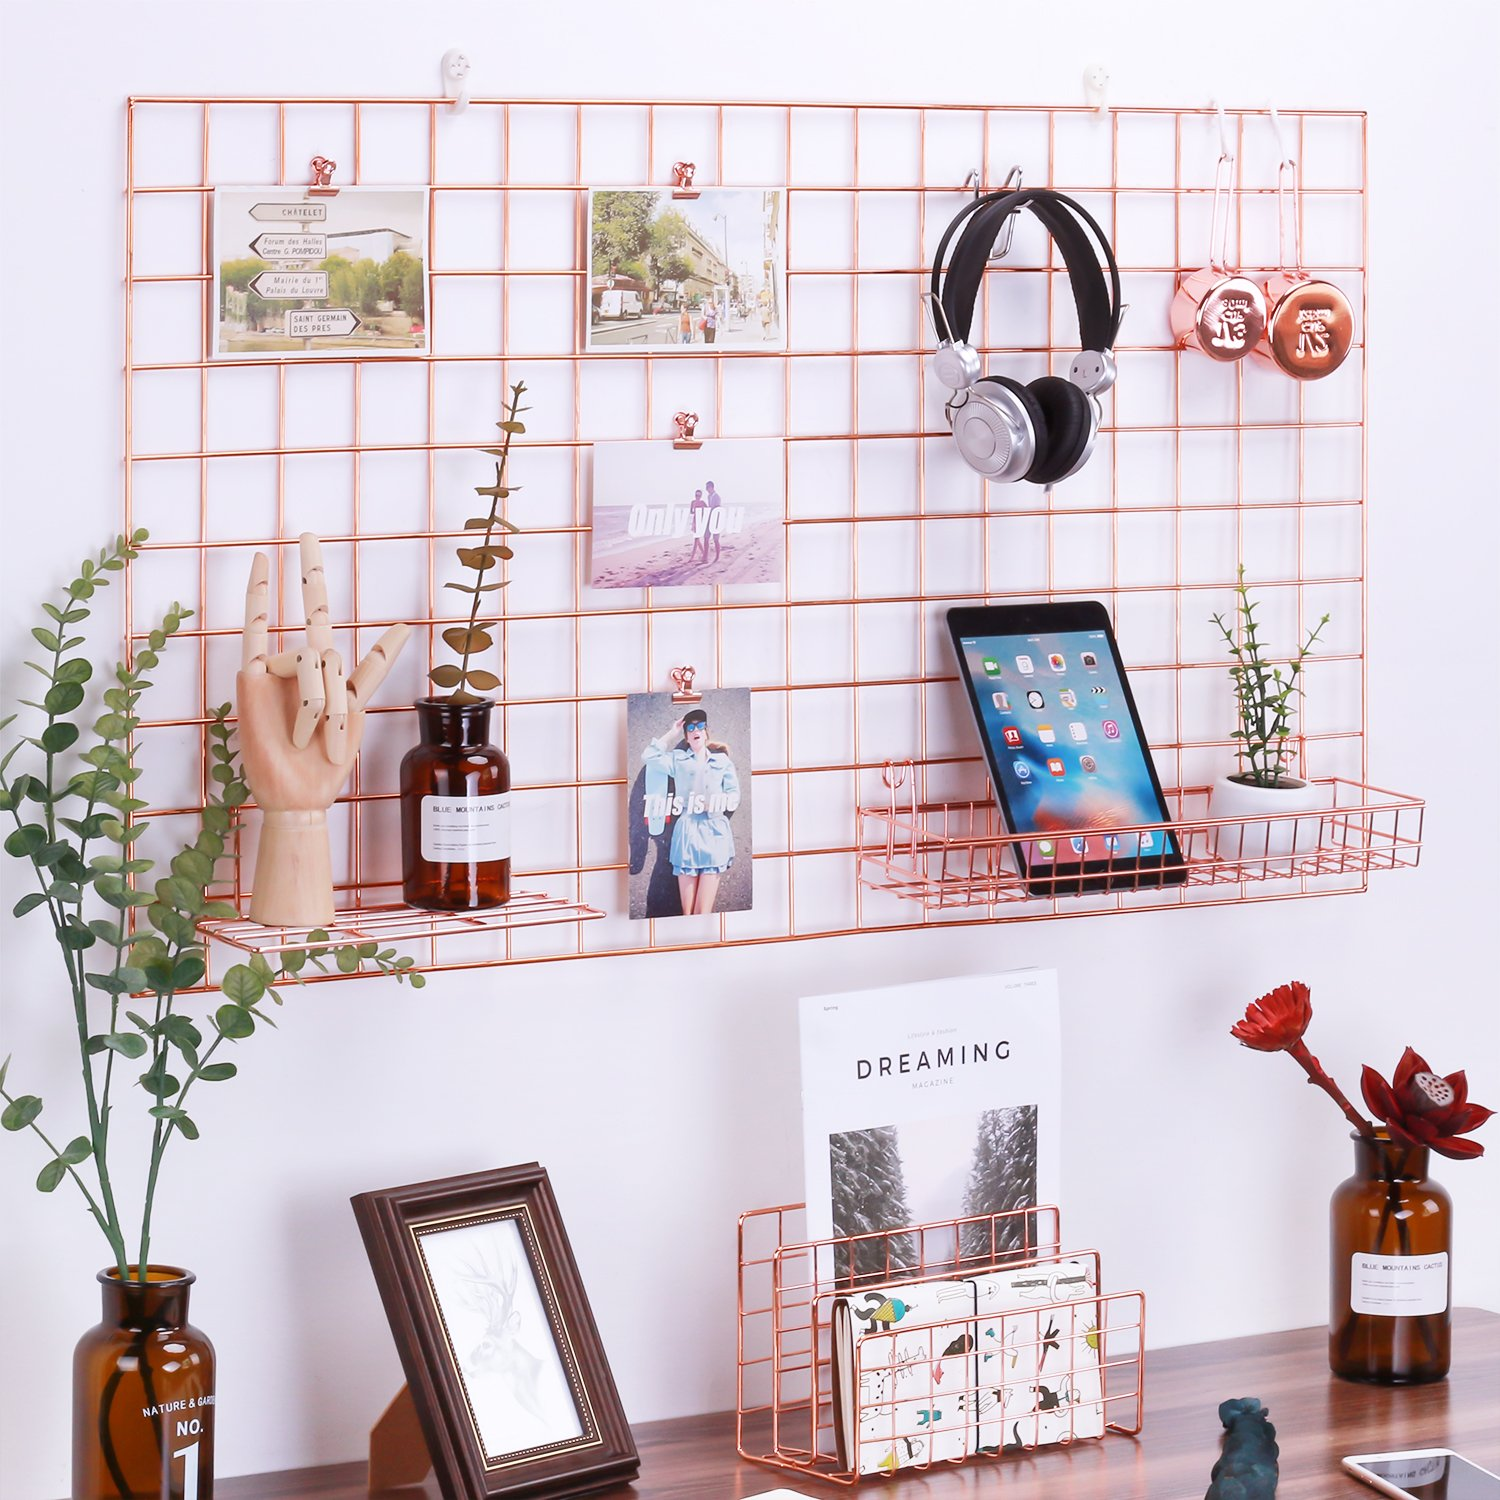 Zosenley Rose Gold Photo Hanging Display, Wall Grid Panel for Display Decoration & Storage, Size 37.8''x21.2''/Rose Gold/Copper